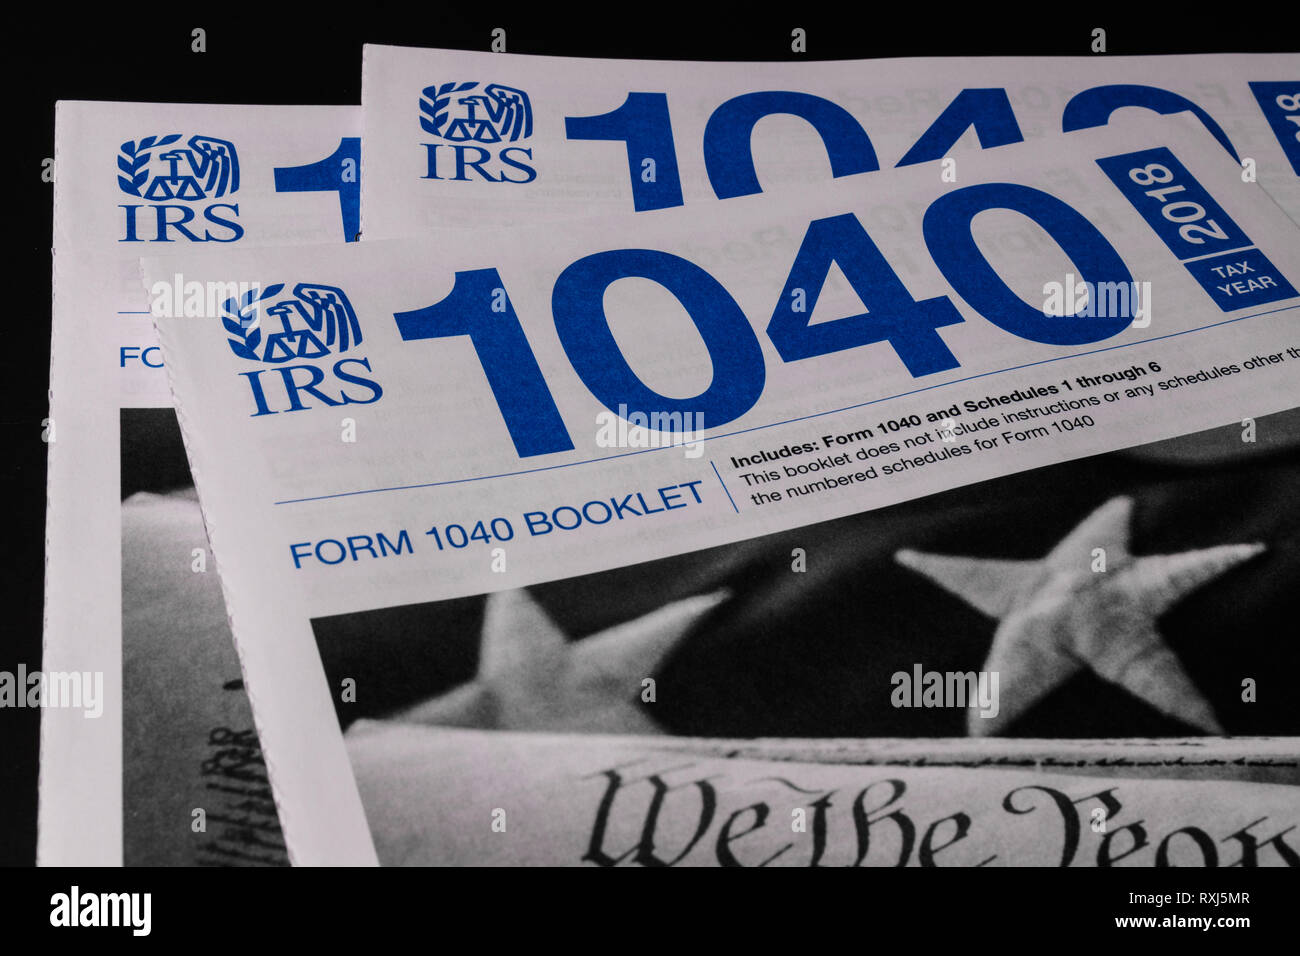 1040 Tax Forms Stock Photos & 1040 Tax Forms Stock Images - Alamy